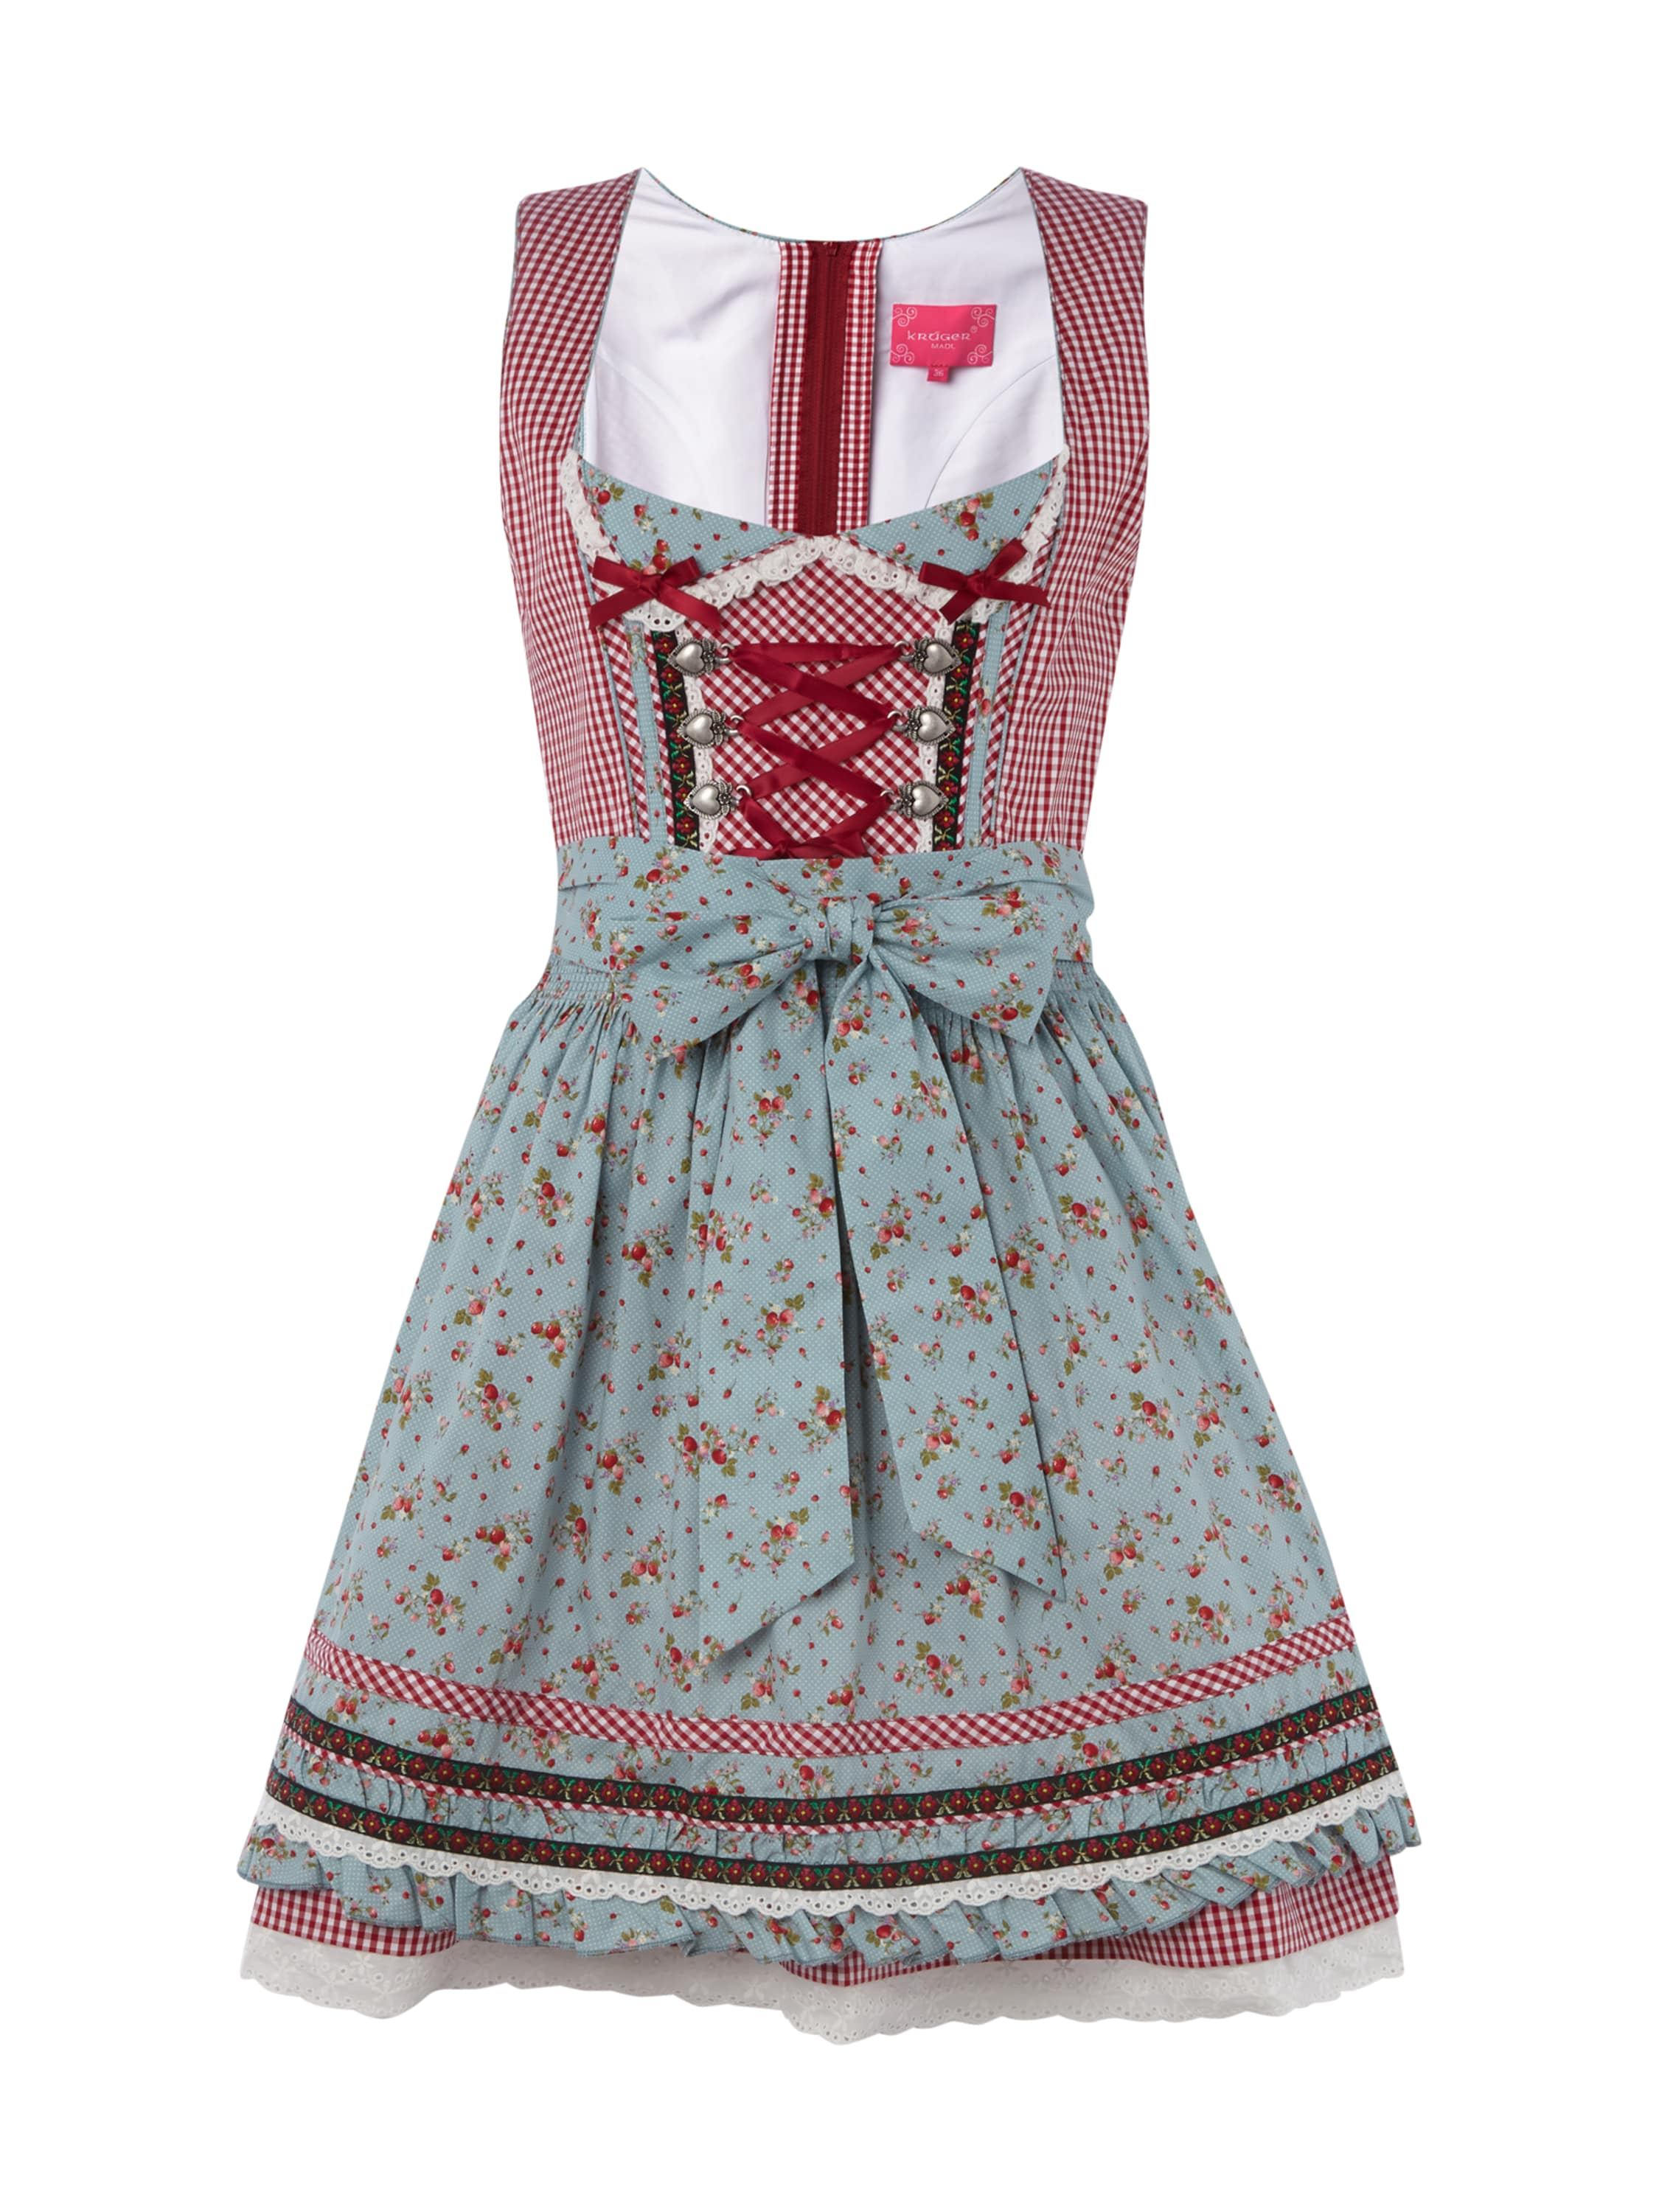 dirndl mit sch rze und vichy karo fashion id online shop. Black Bedroom Furniture Sets. Home Design Ideas